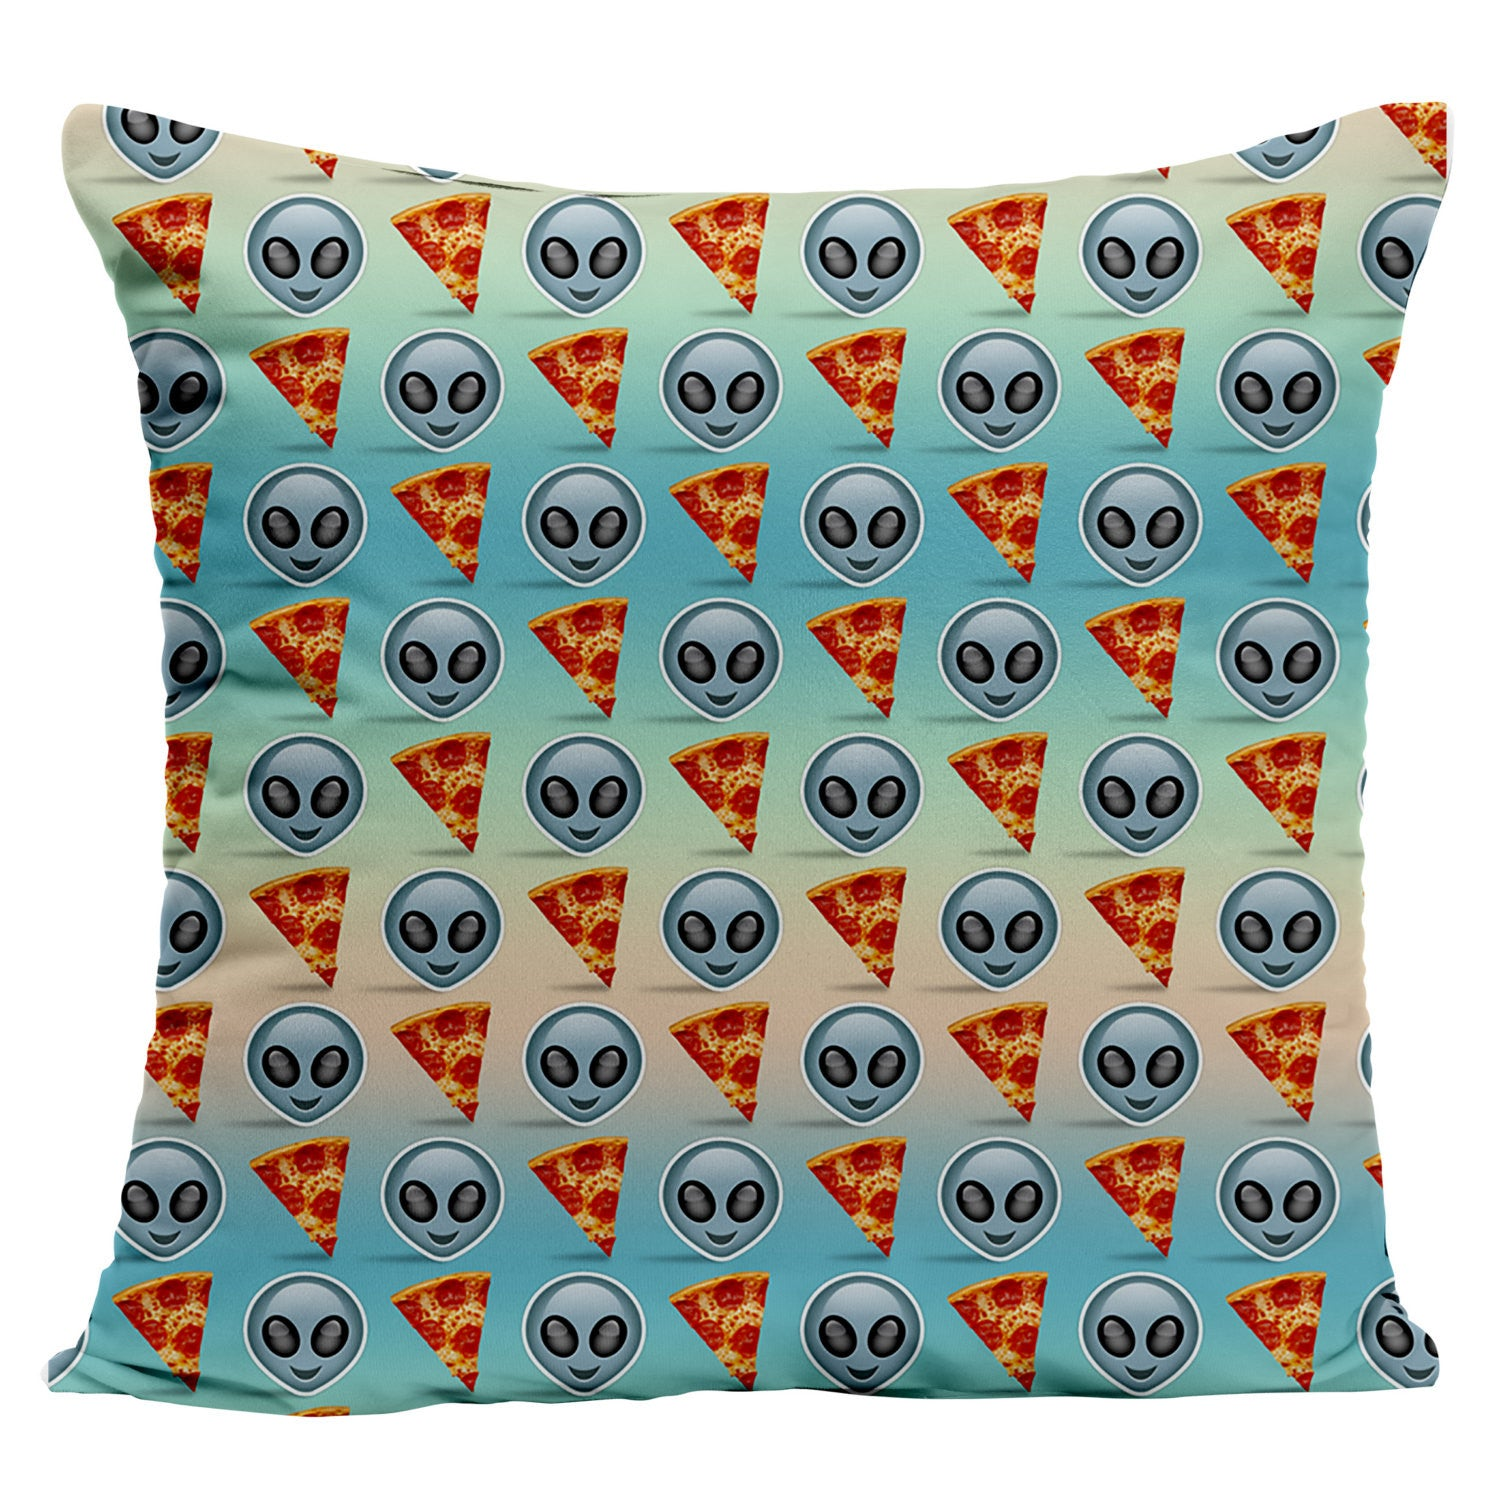 Alien Pizza Emoji Pillow - Shweeet